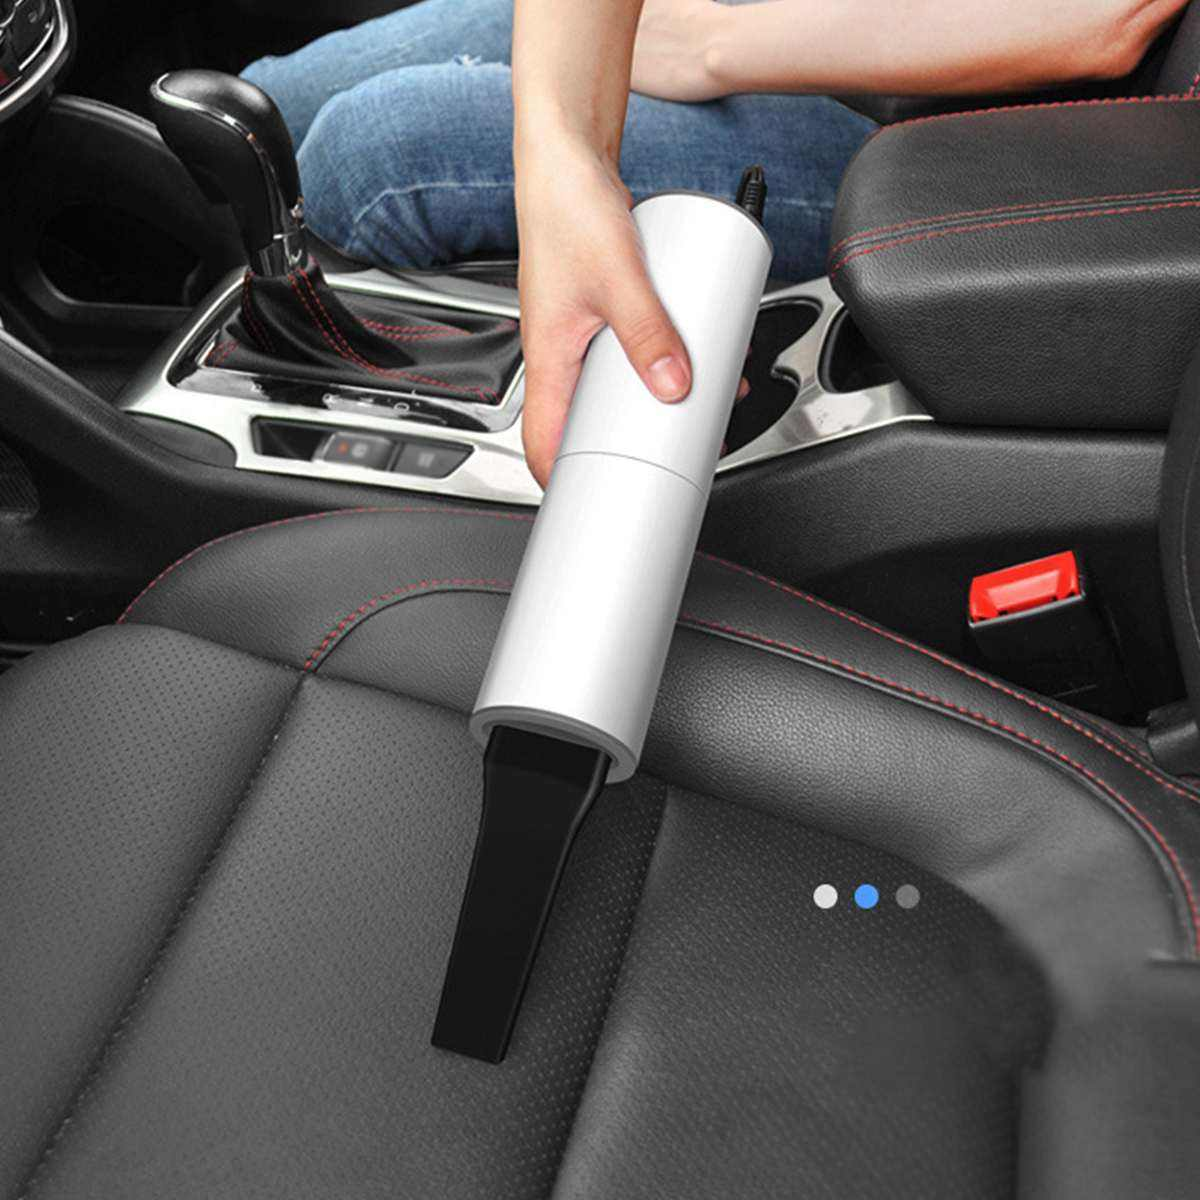 Car Vacuum Cleaner Portable Wired Handheld 120W Auto Vacuum Cleaner 12V Mini Car Vaccum CleanersためCar Interior Cleaning